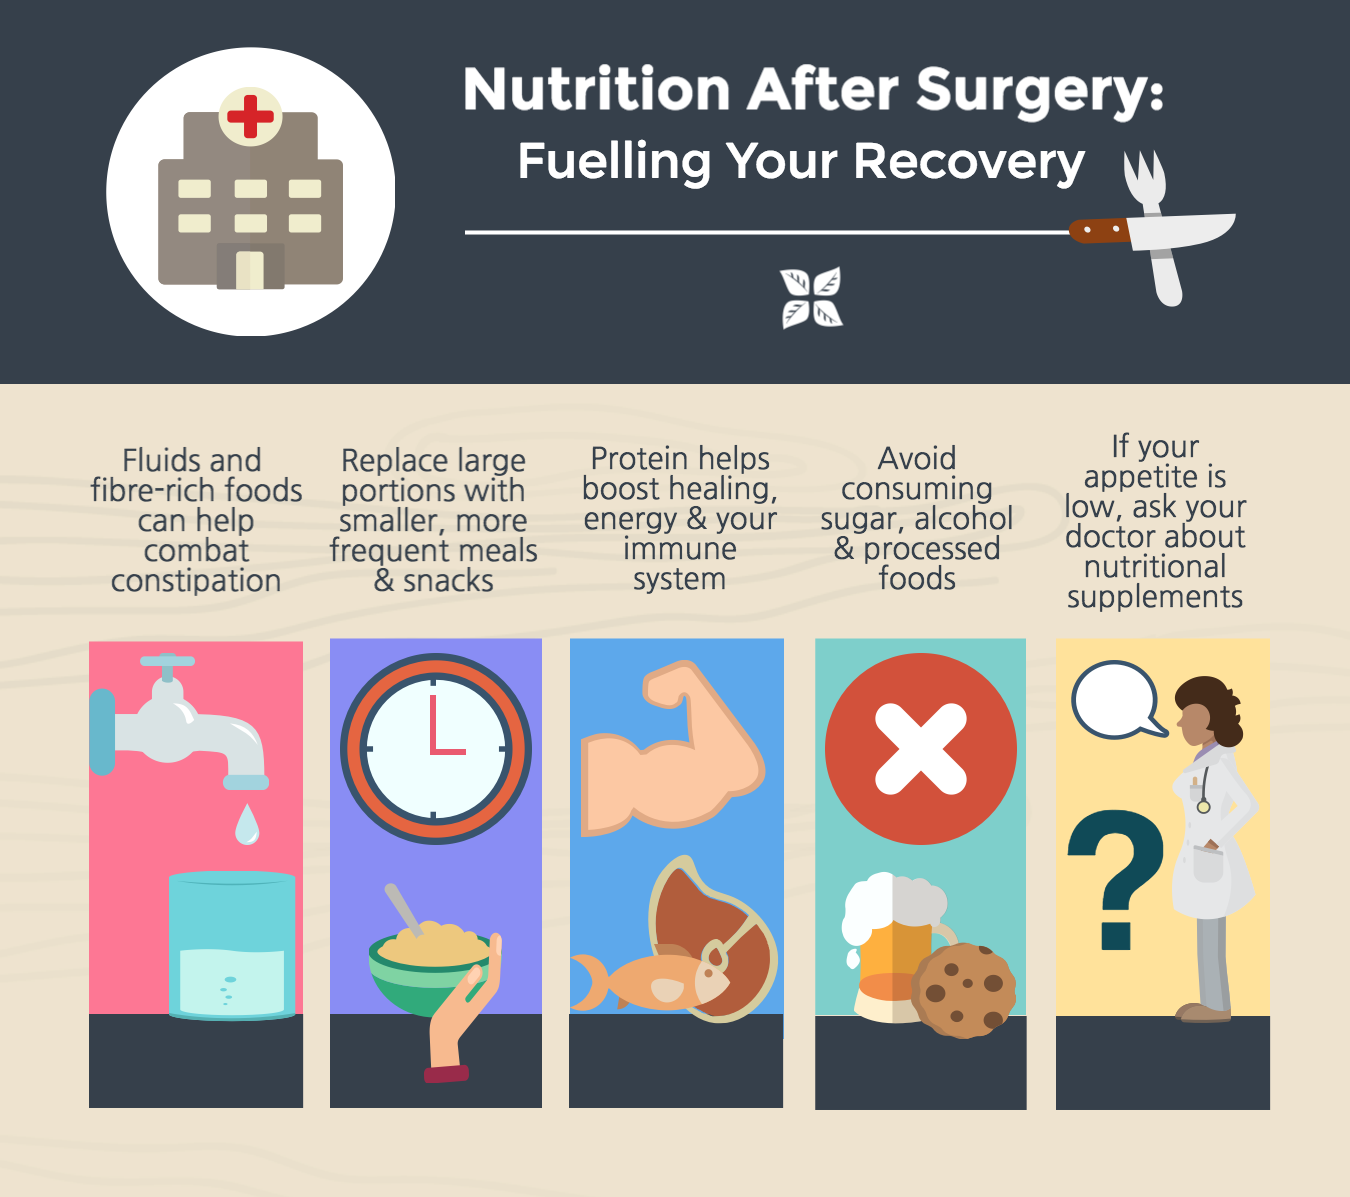 Nutrition after surgery: how to fuel your recovery